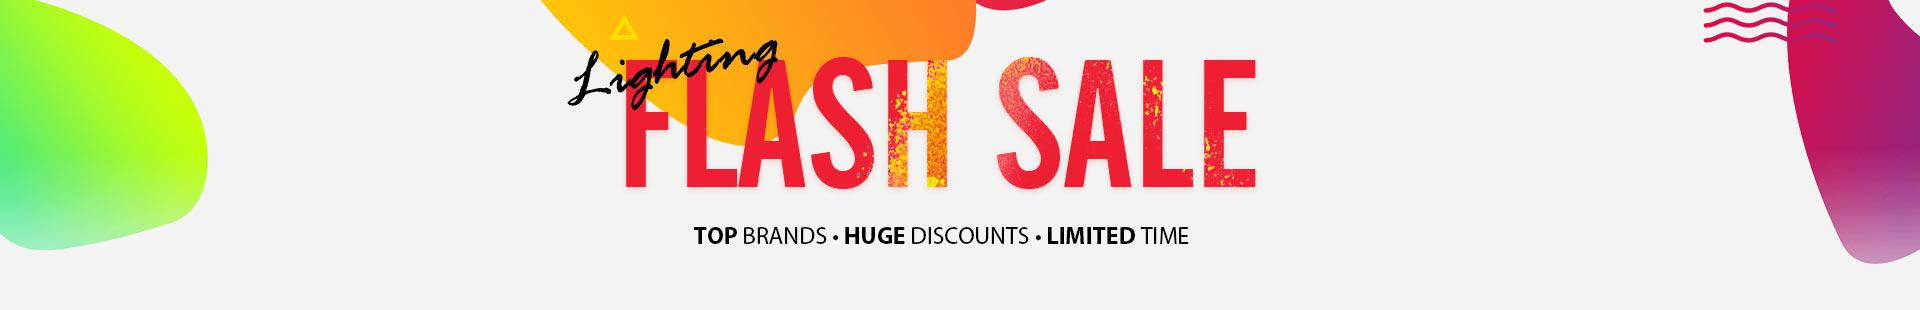 gearbest flash sale snap up deals